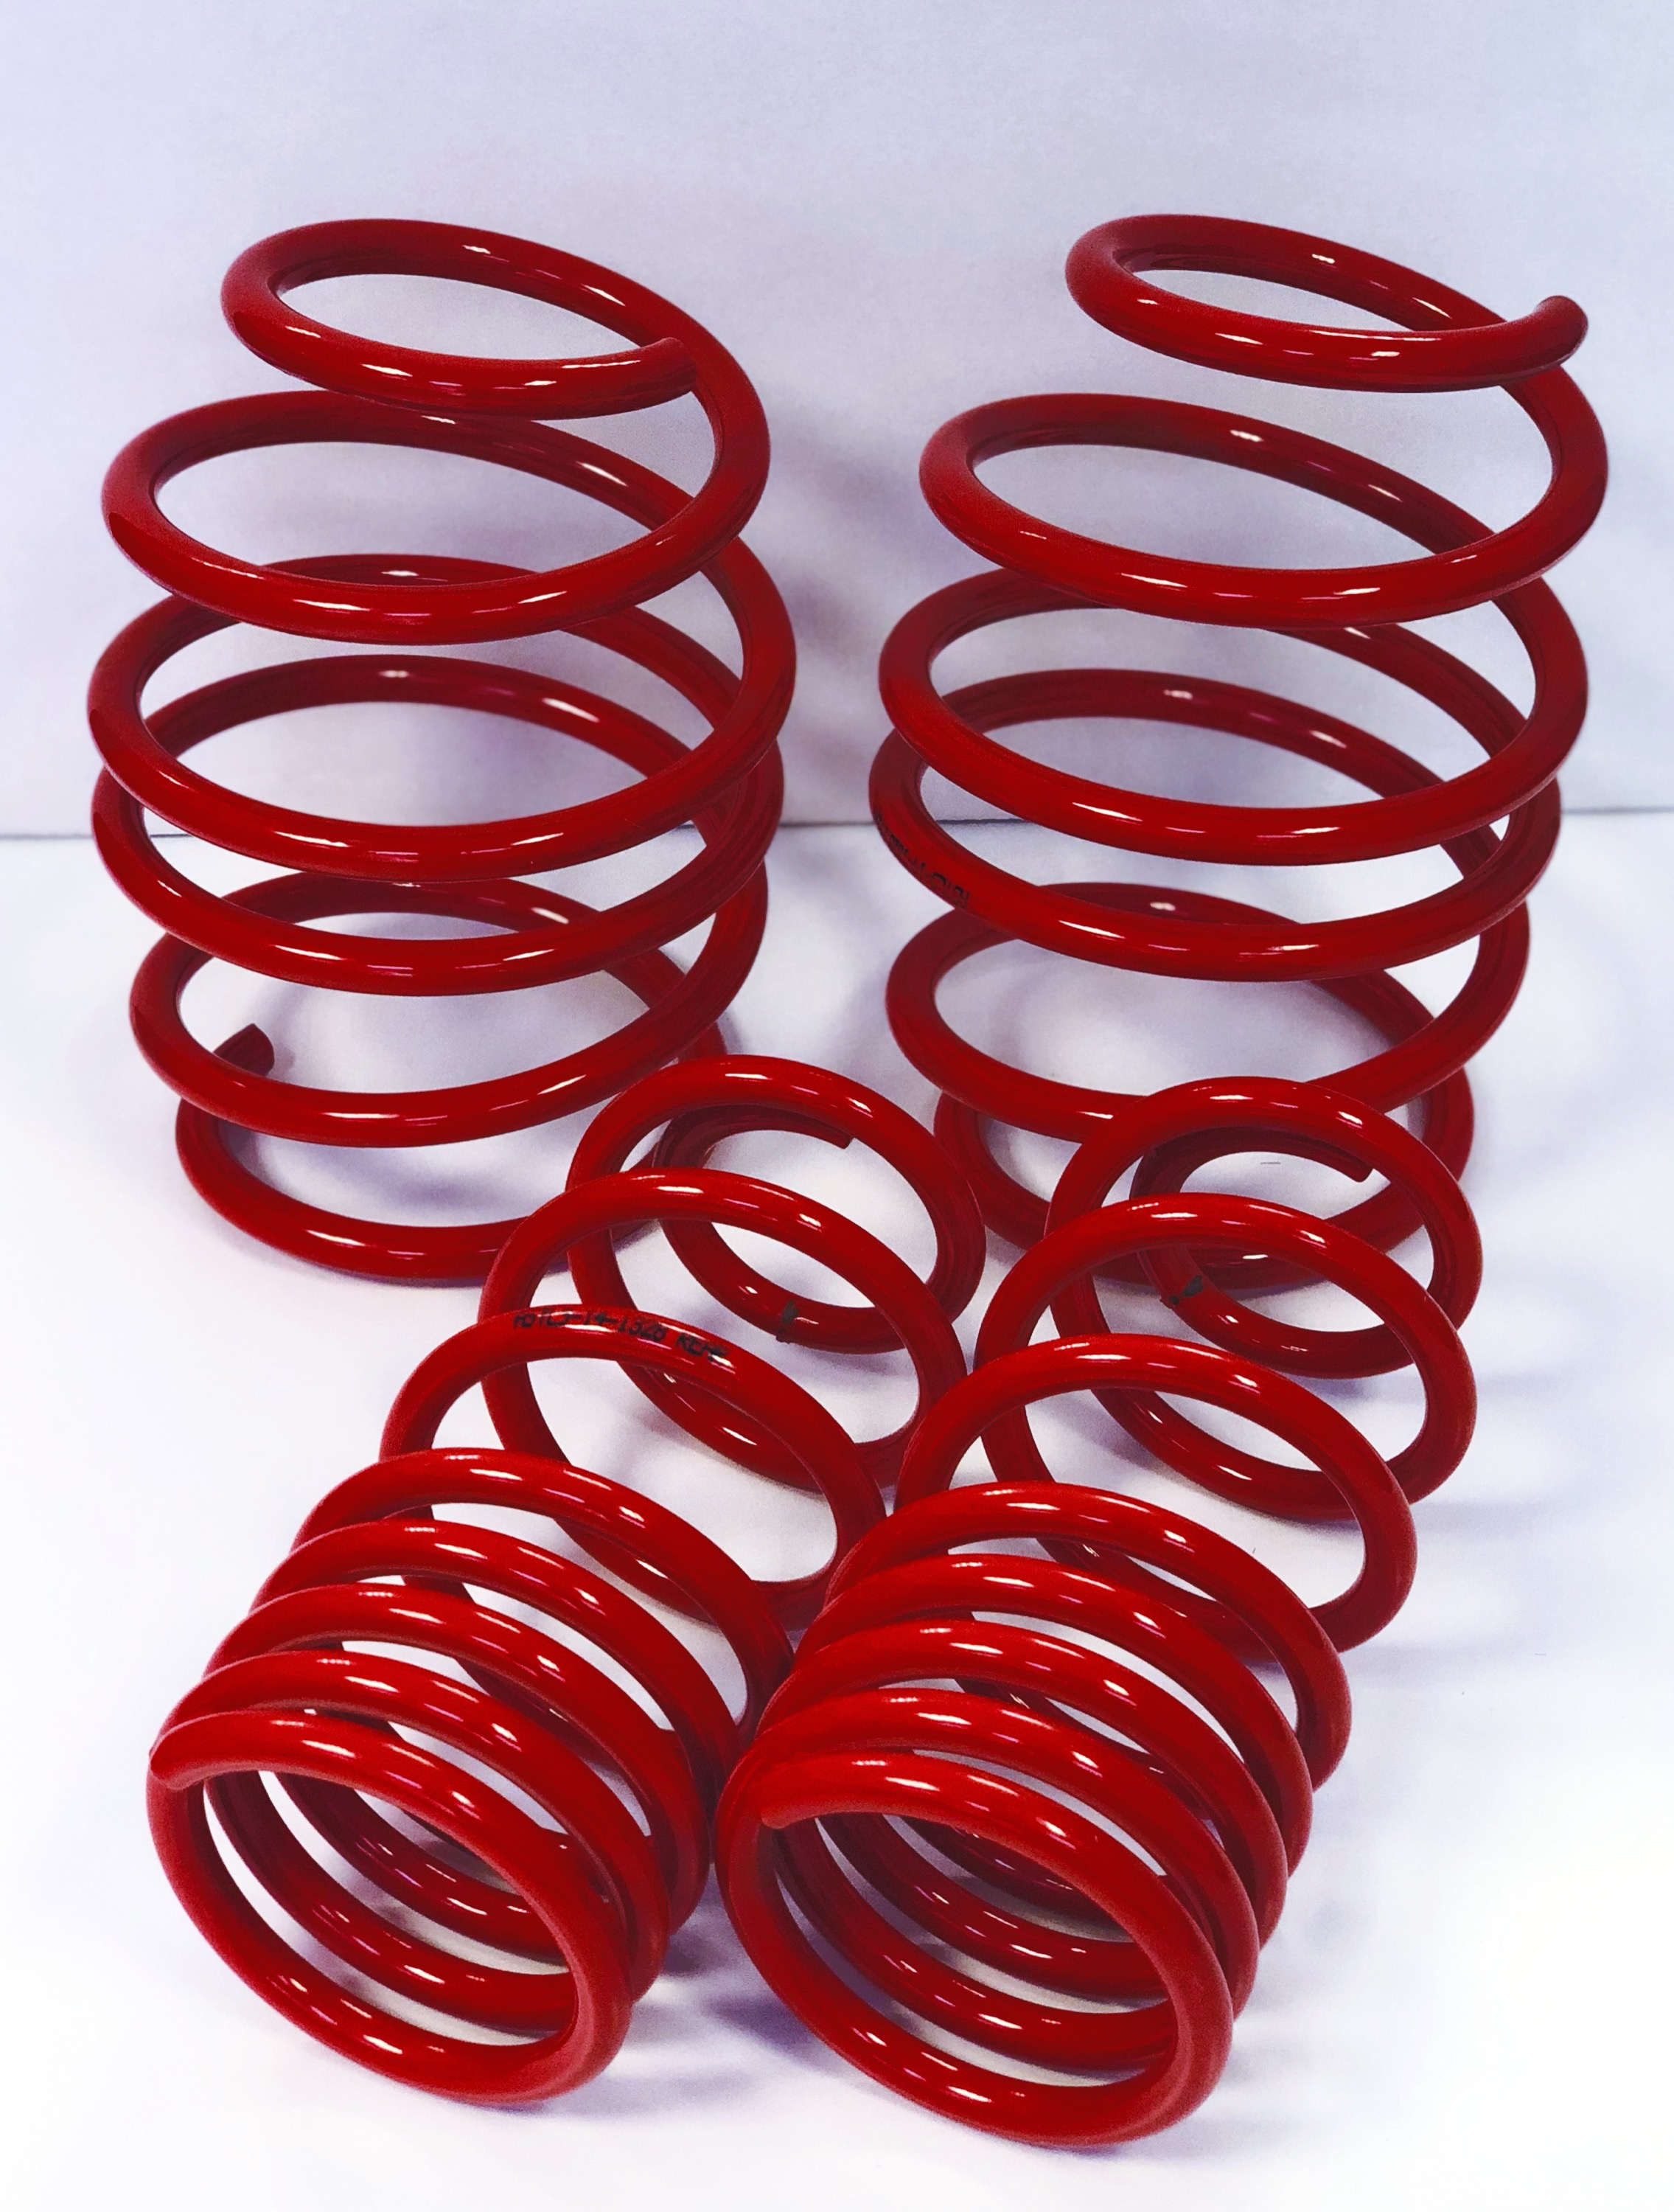 Seat CORDOBA AST Suspension Lowering Springs 40MM